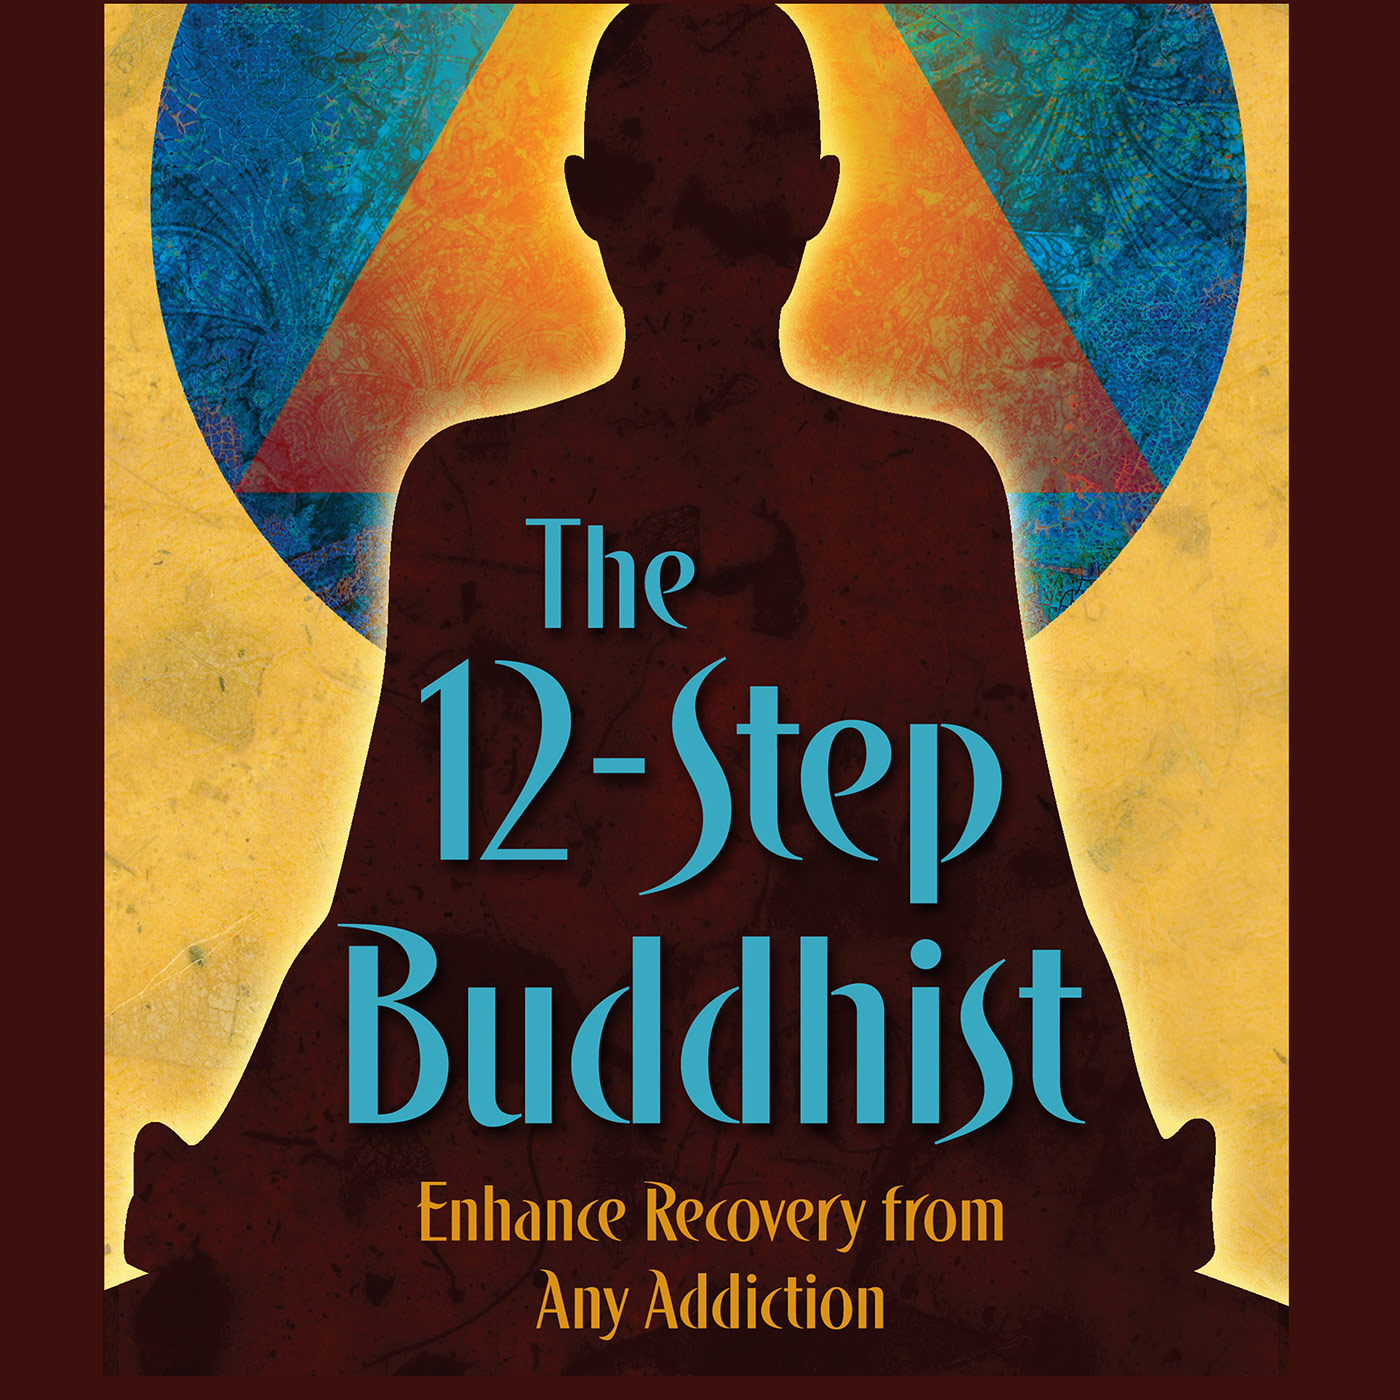 the 12-Step Buddhist Podcast on Apple Podcasts